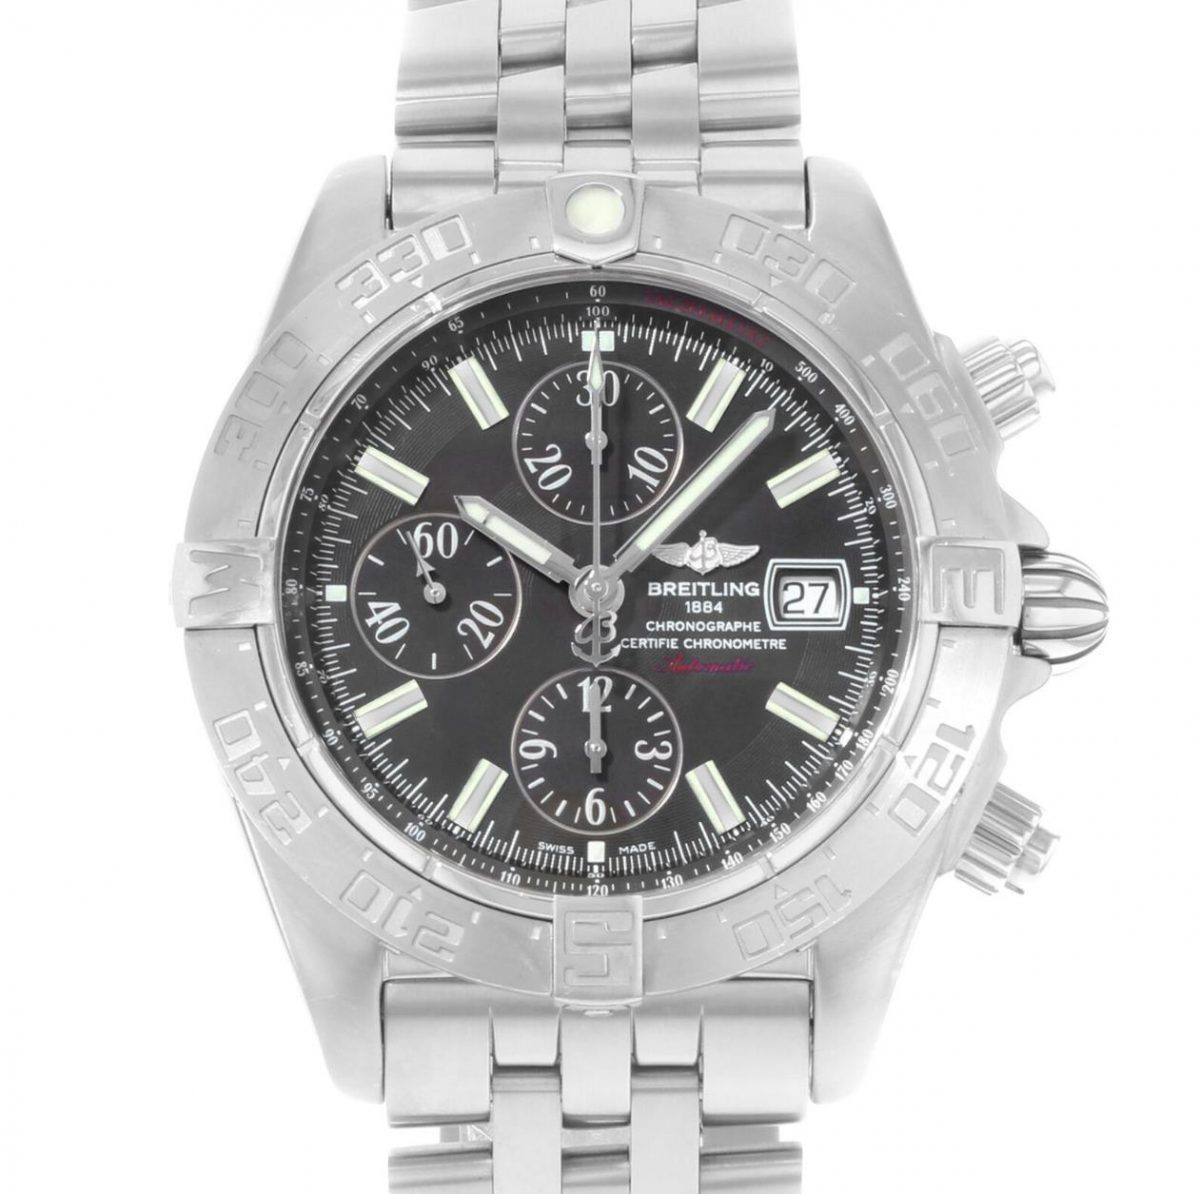 UK Exact Breitling Galactic A1336410 Fake Watch For Men